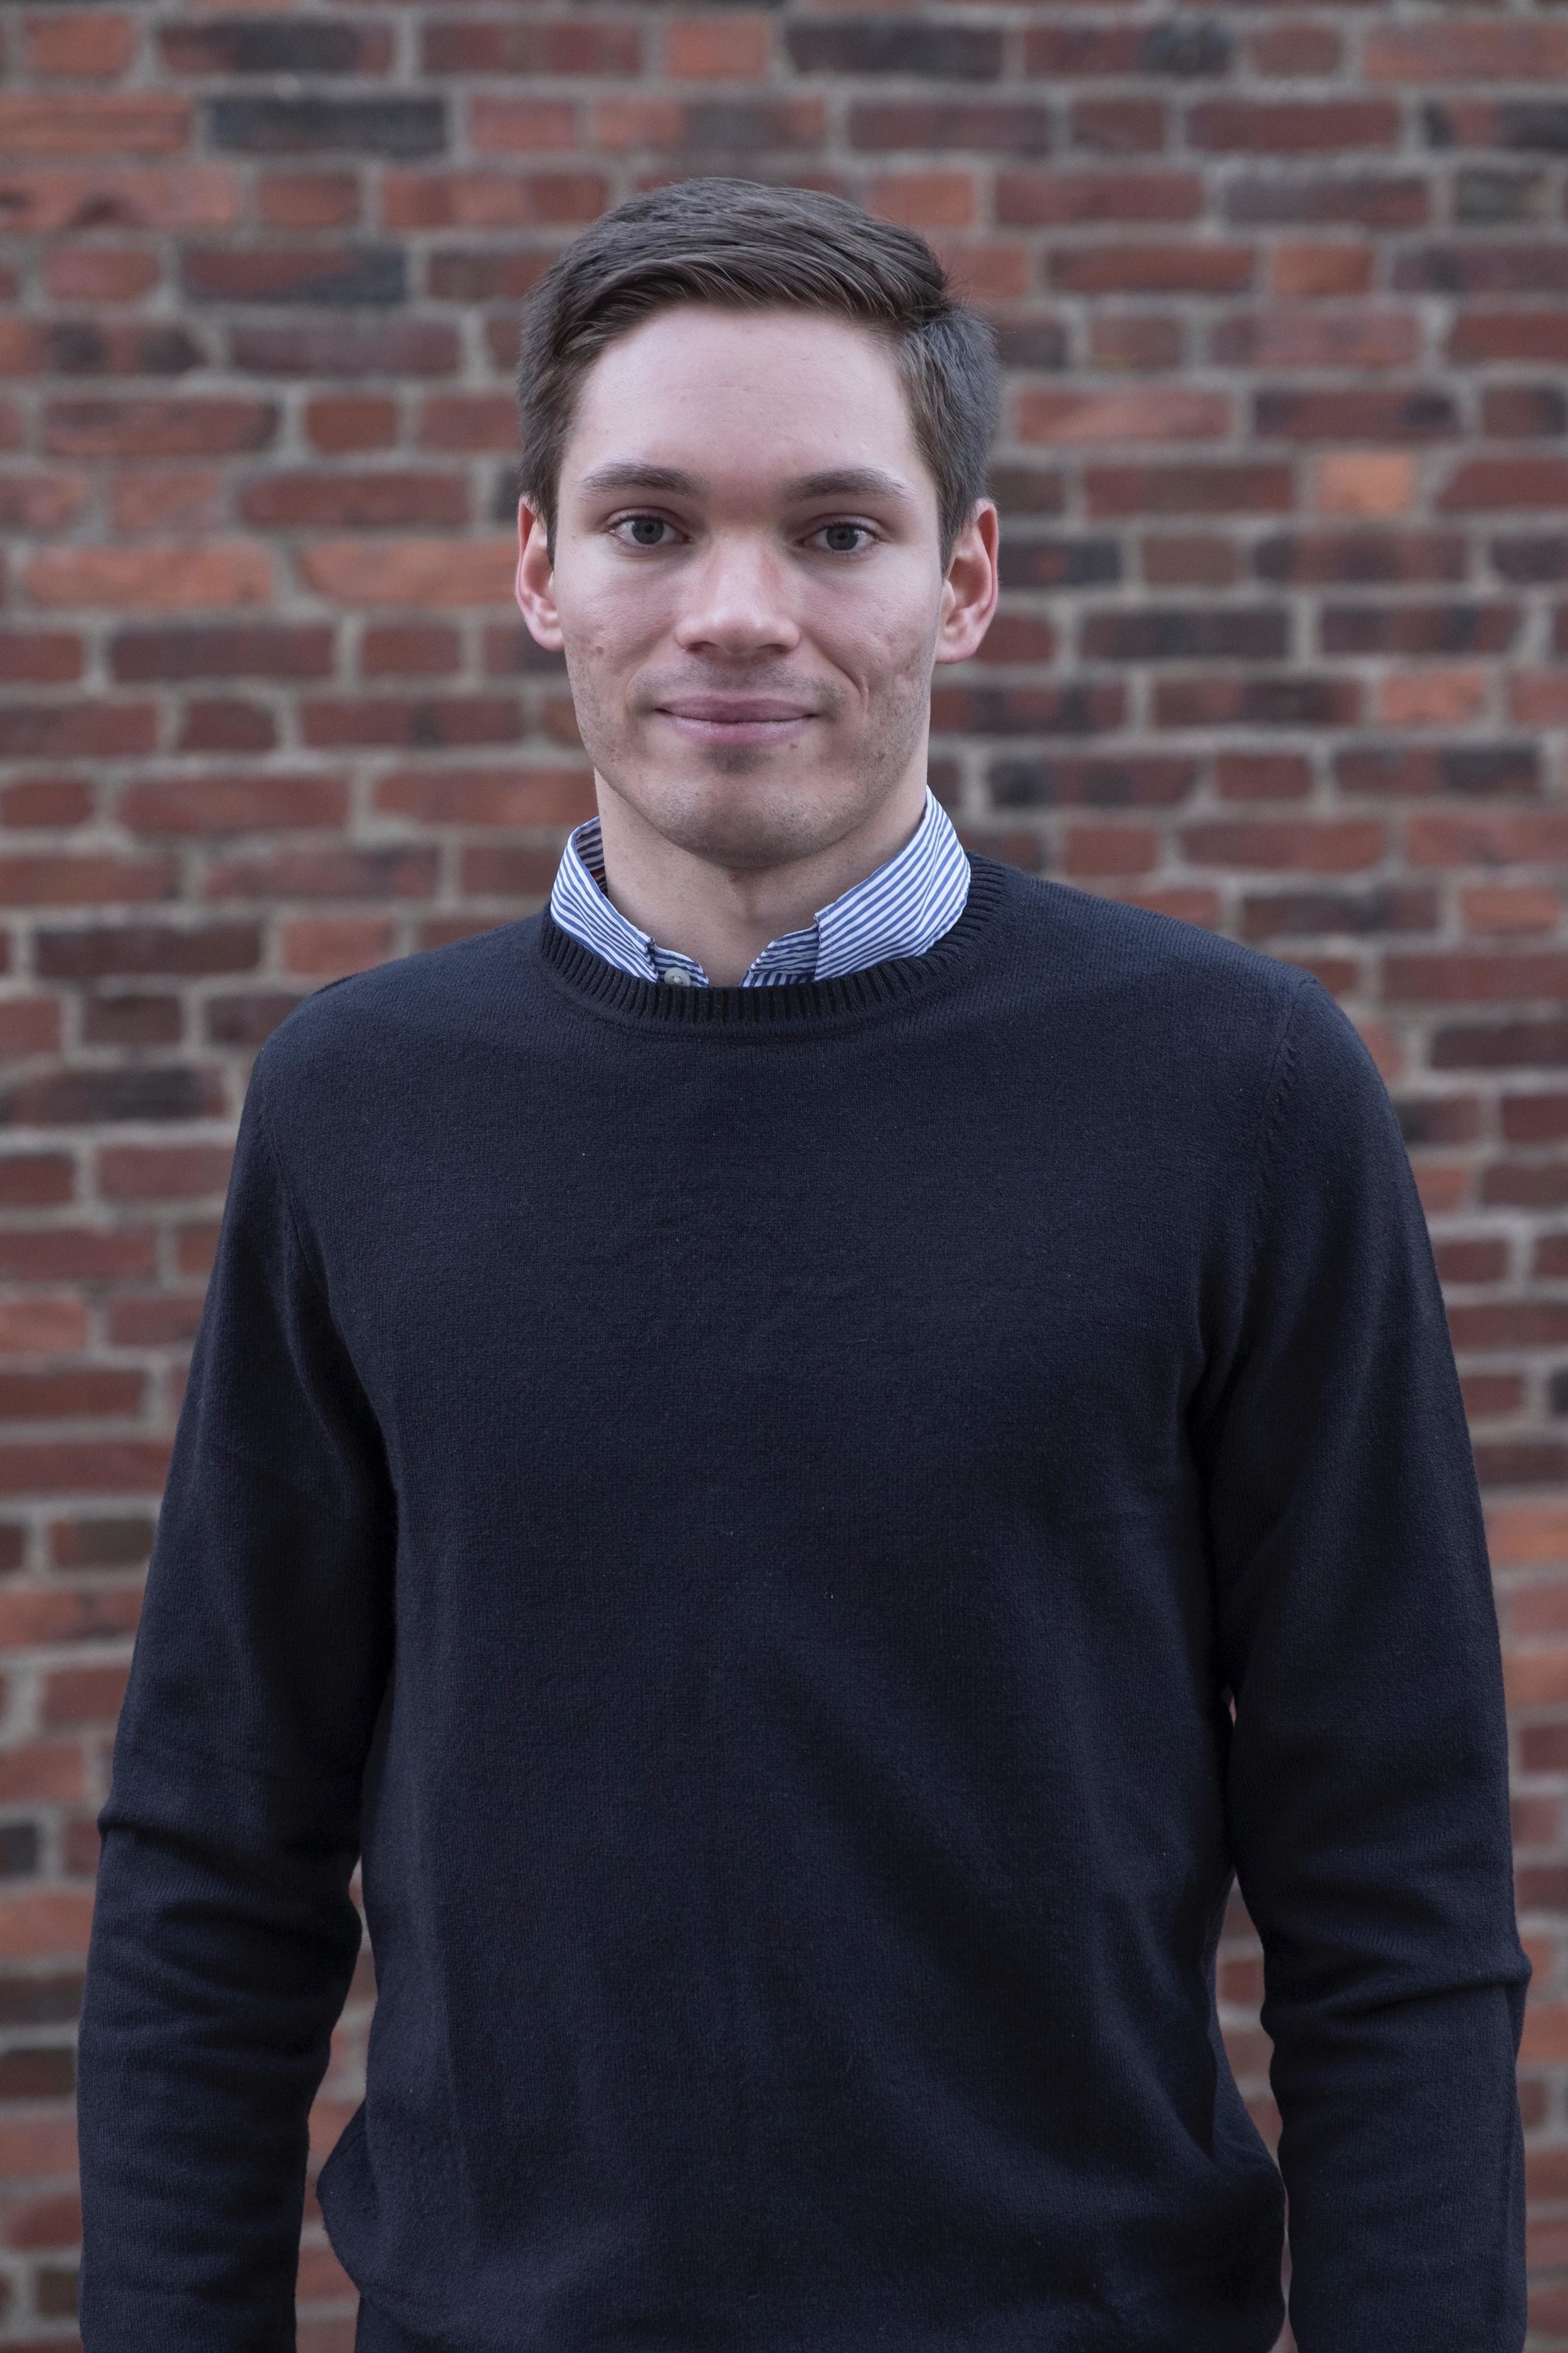 Tobias Estreen - • Interest in floorball and golf, with the goal of reaching scratch handicap in 2019.• Pursuing a Masters Degree in Engineering Physics, major in Machine Learning and Artificial Intelligence at KTH.• Previous experience in front-end development, back-end development and data analysis.• Passionate about big data and machine learning and how it can be used to create value for both customers and organizations.